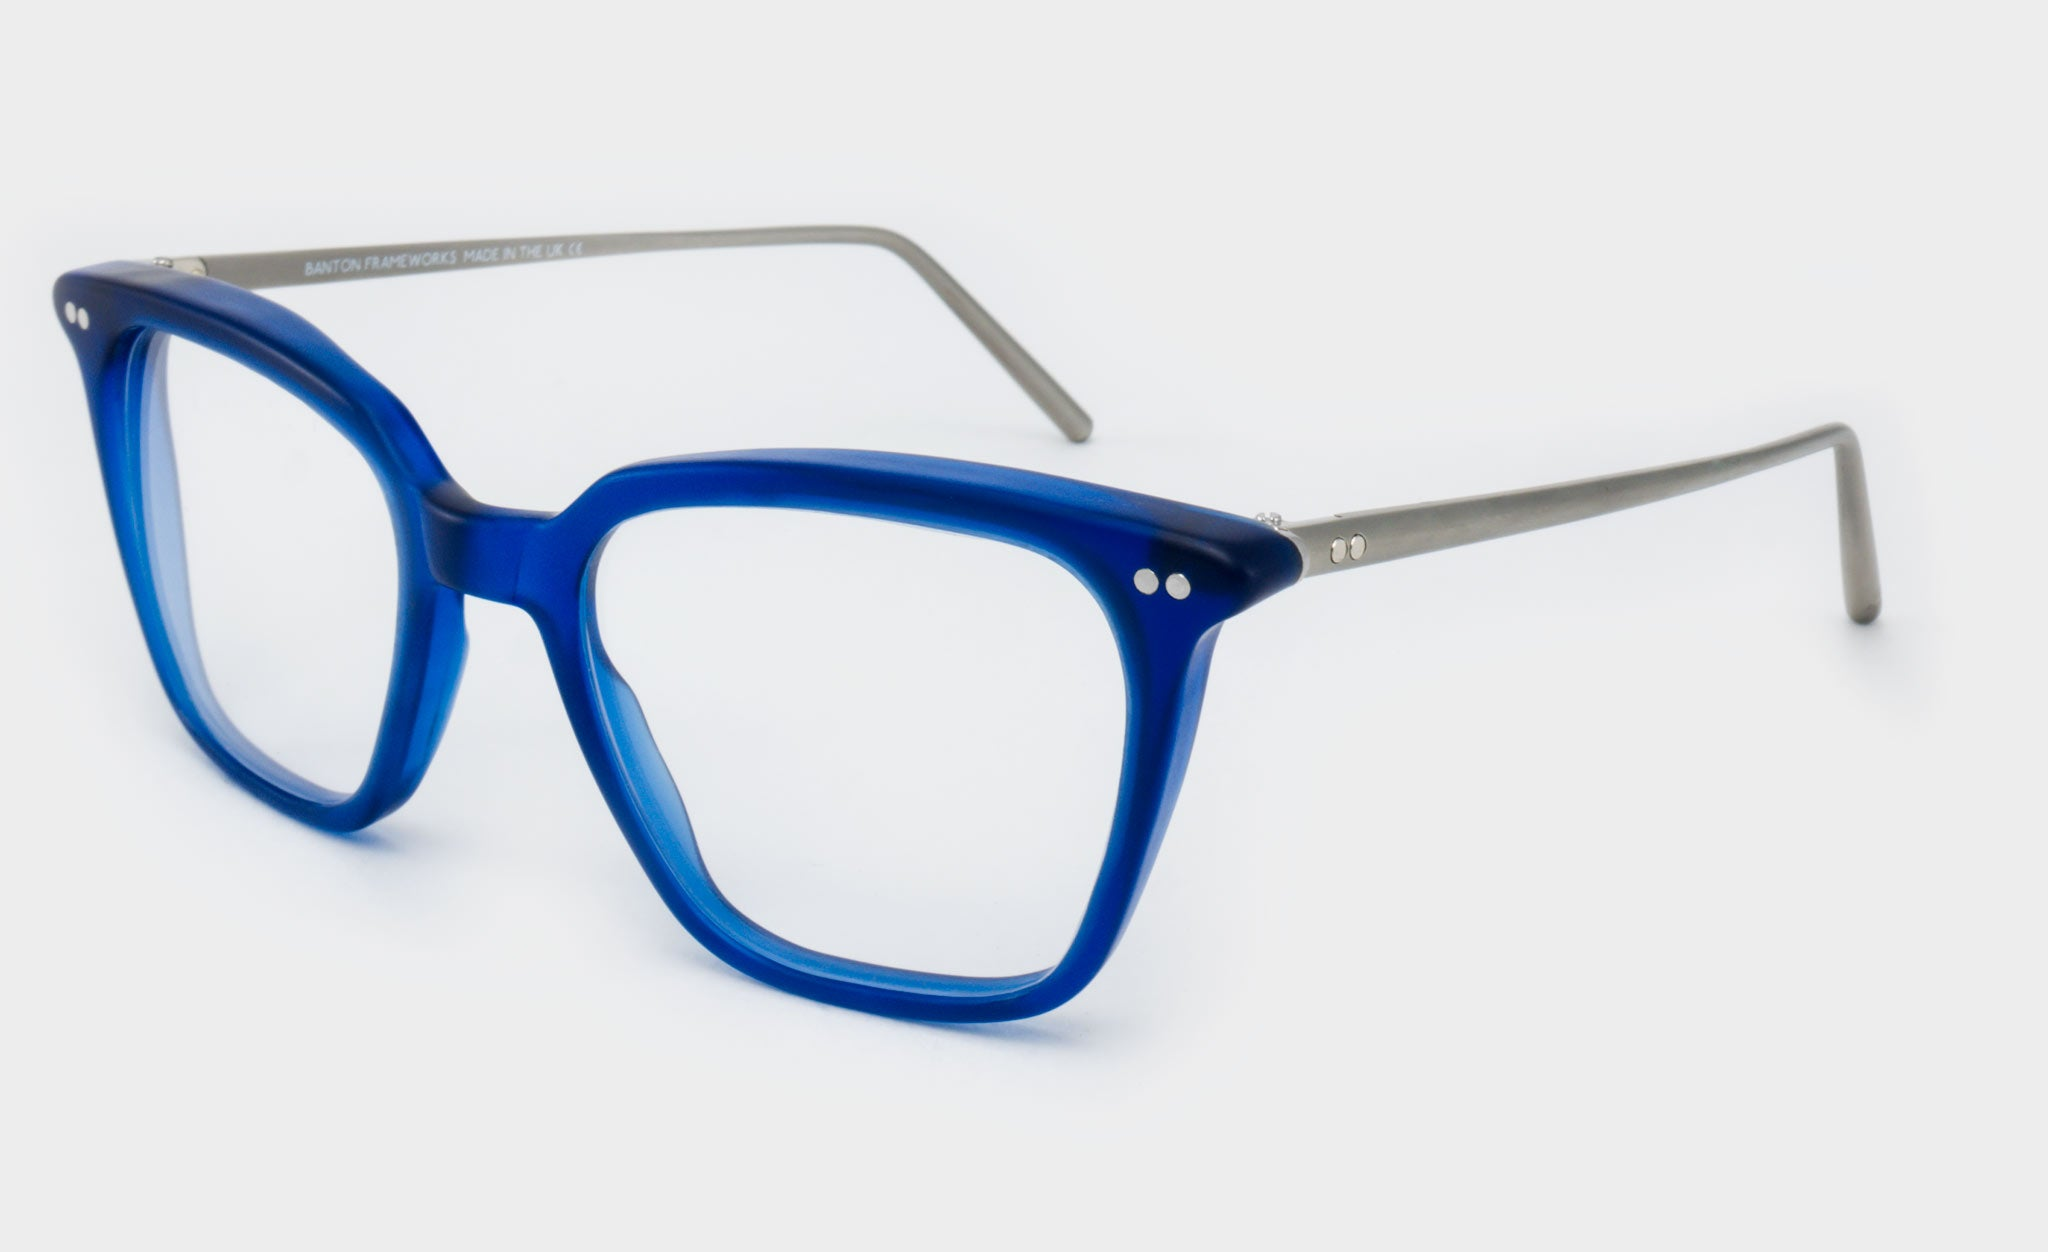 Varifocal-small-square-blue-glasses-side-View